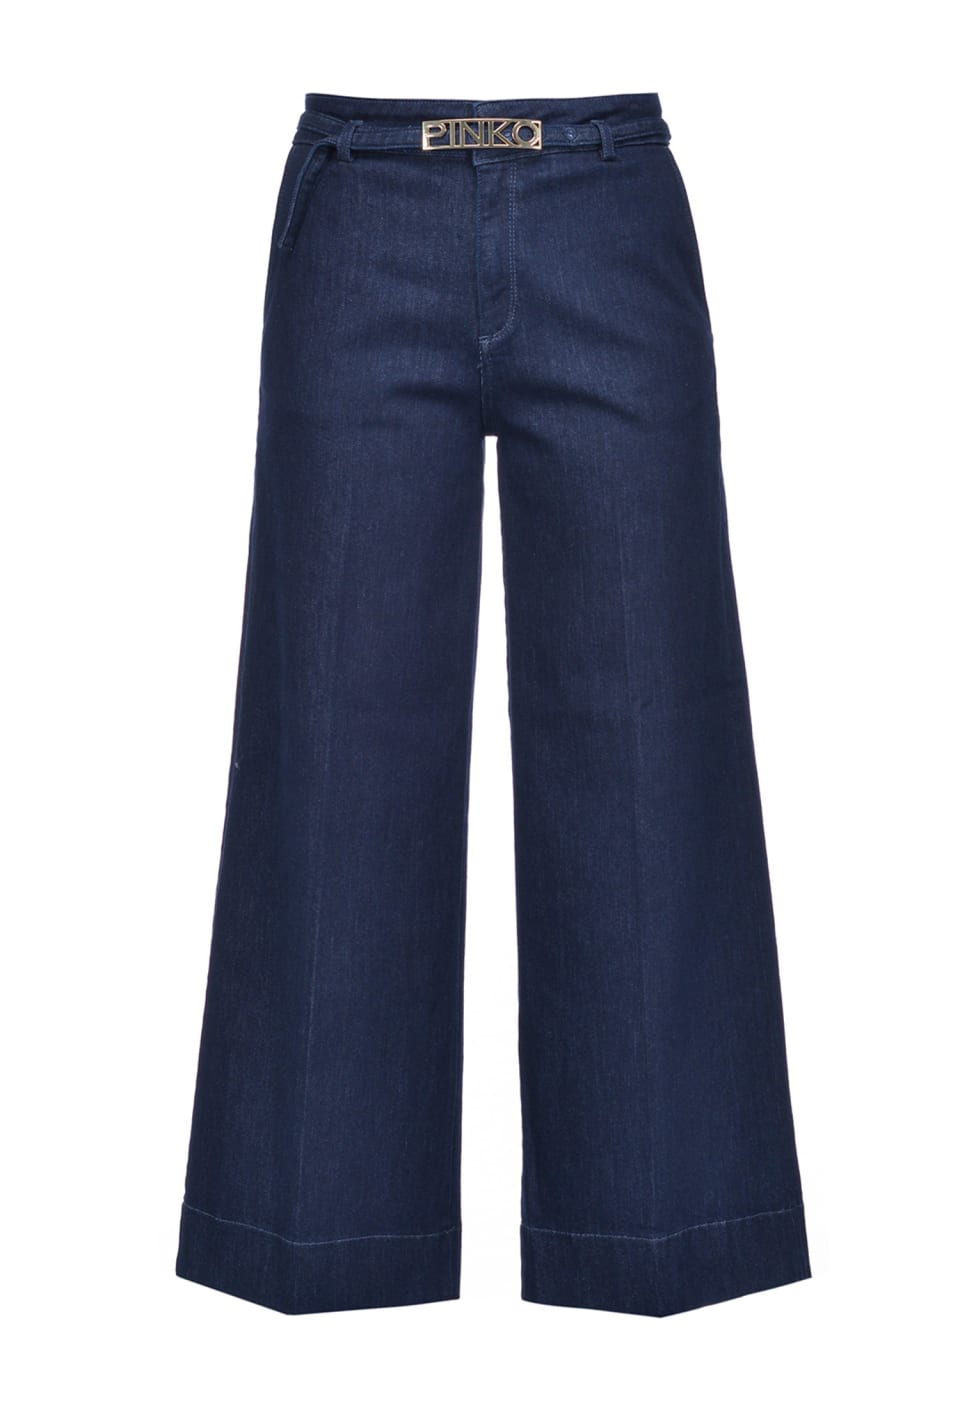 Slim palazzo jeans in stretch twill denim